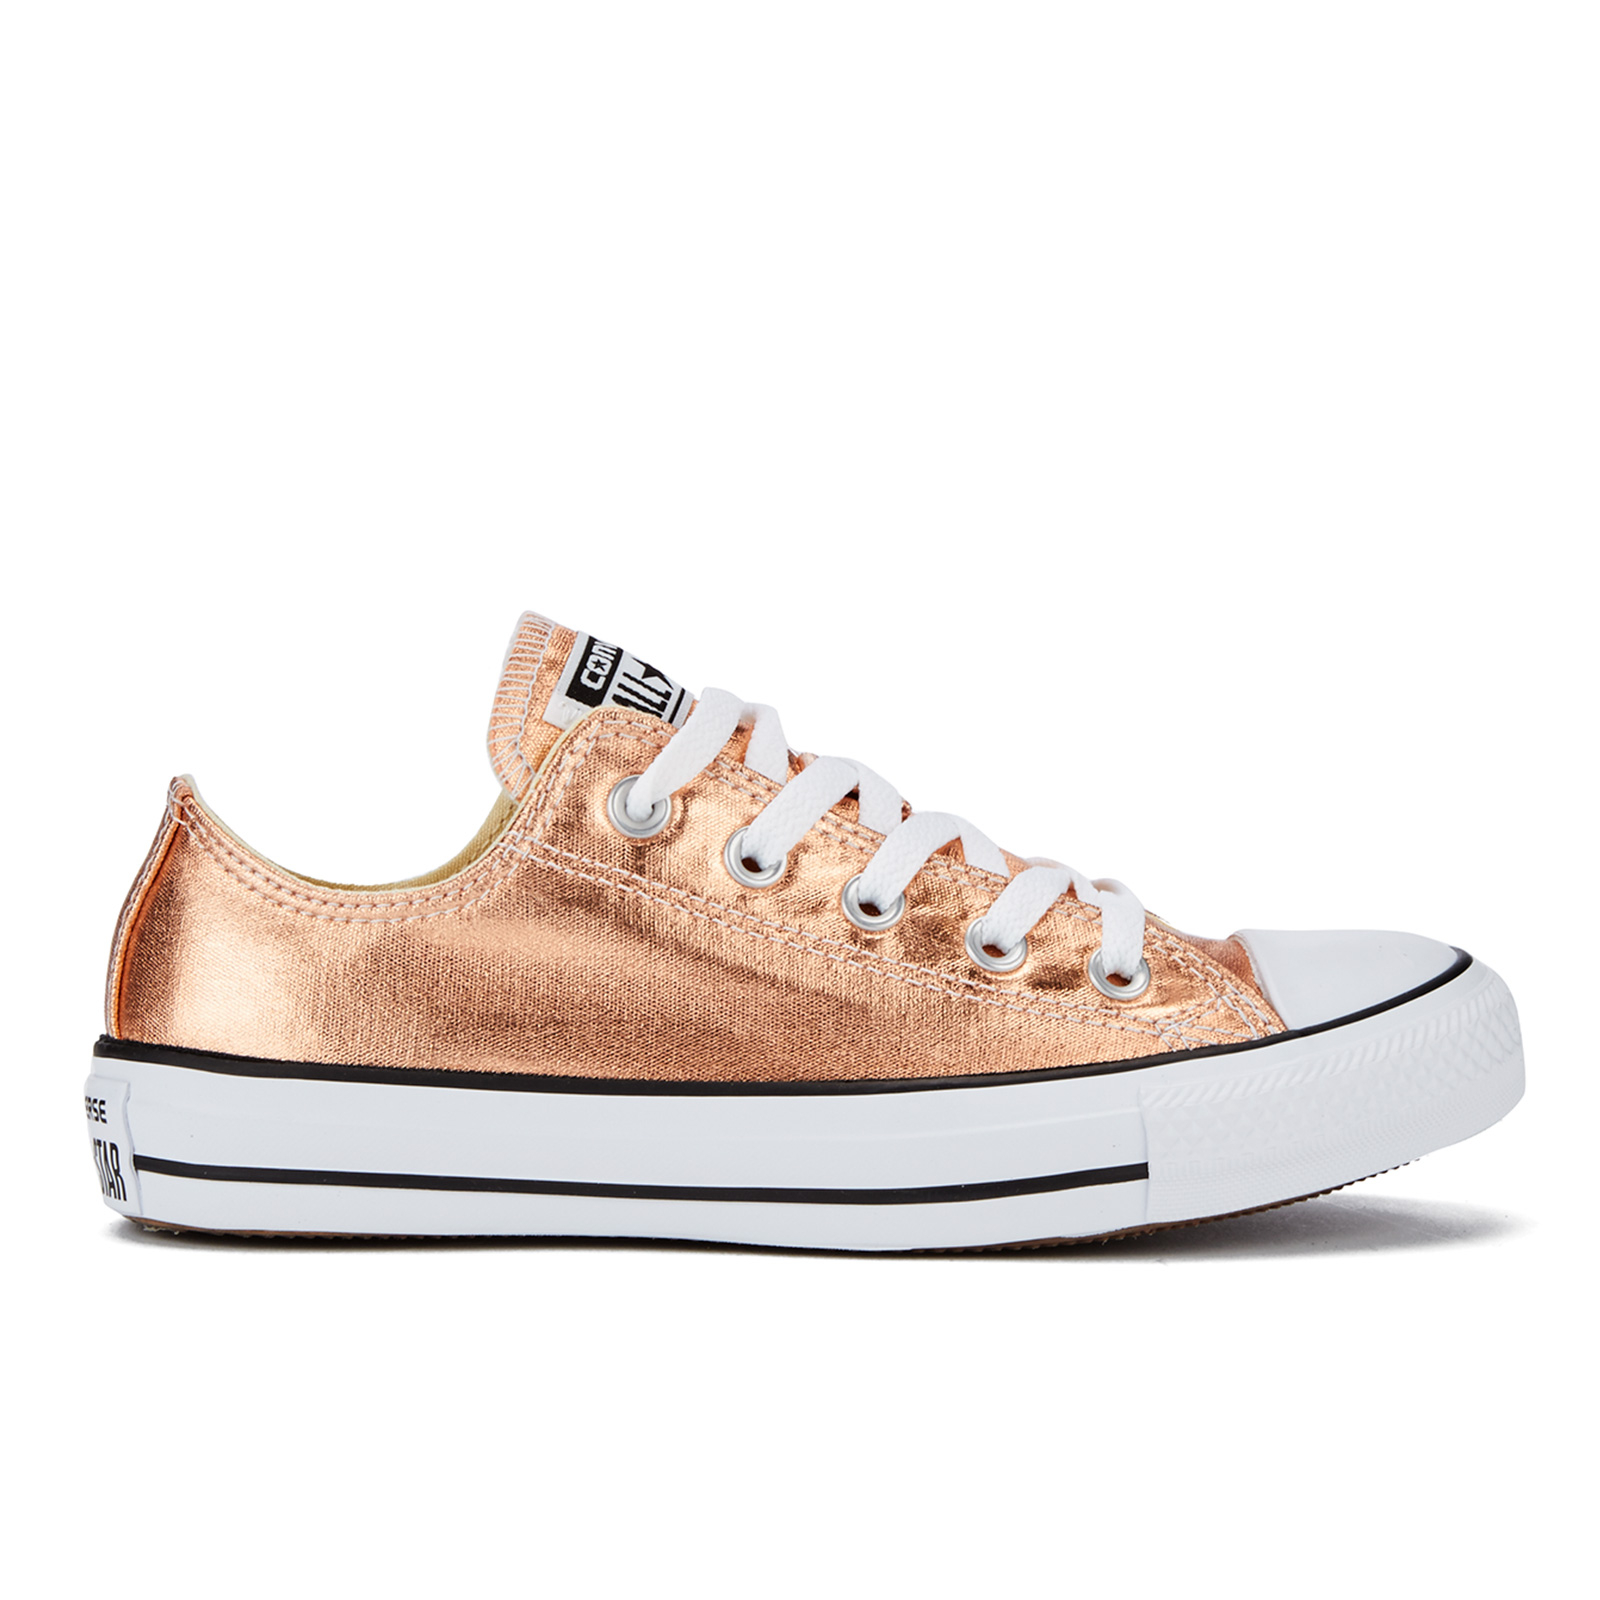 726dcec9c51f79 ... Converse Women s Chuck Taylor All Star Ox Trainers - Metallic Sunset  Glow White Black